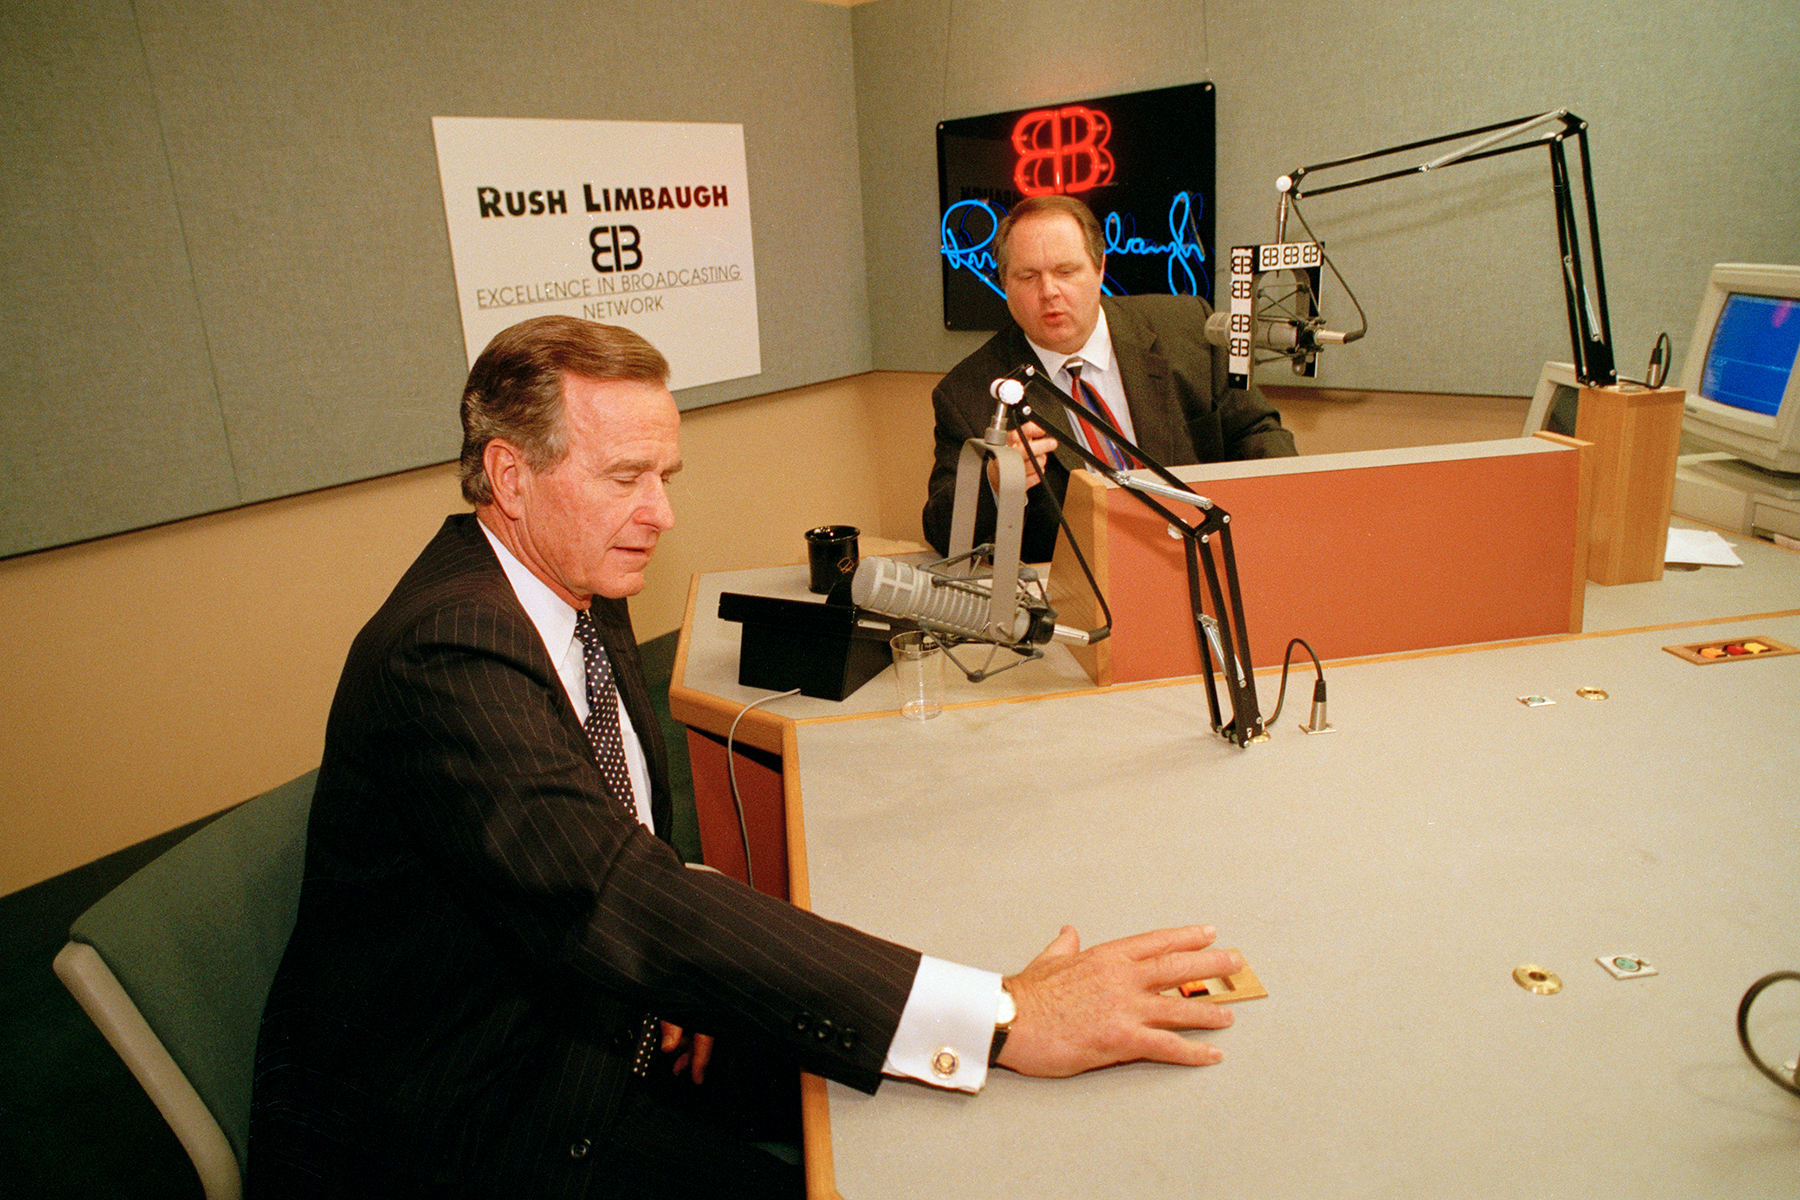 President George Bush talks with conservative radio host Rush Limbaugh at WABC studios in New York City, Sept. 1992. (AP Photo/J. Scott Applewhite)